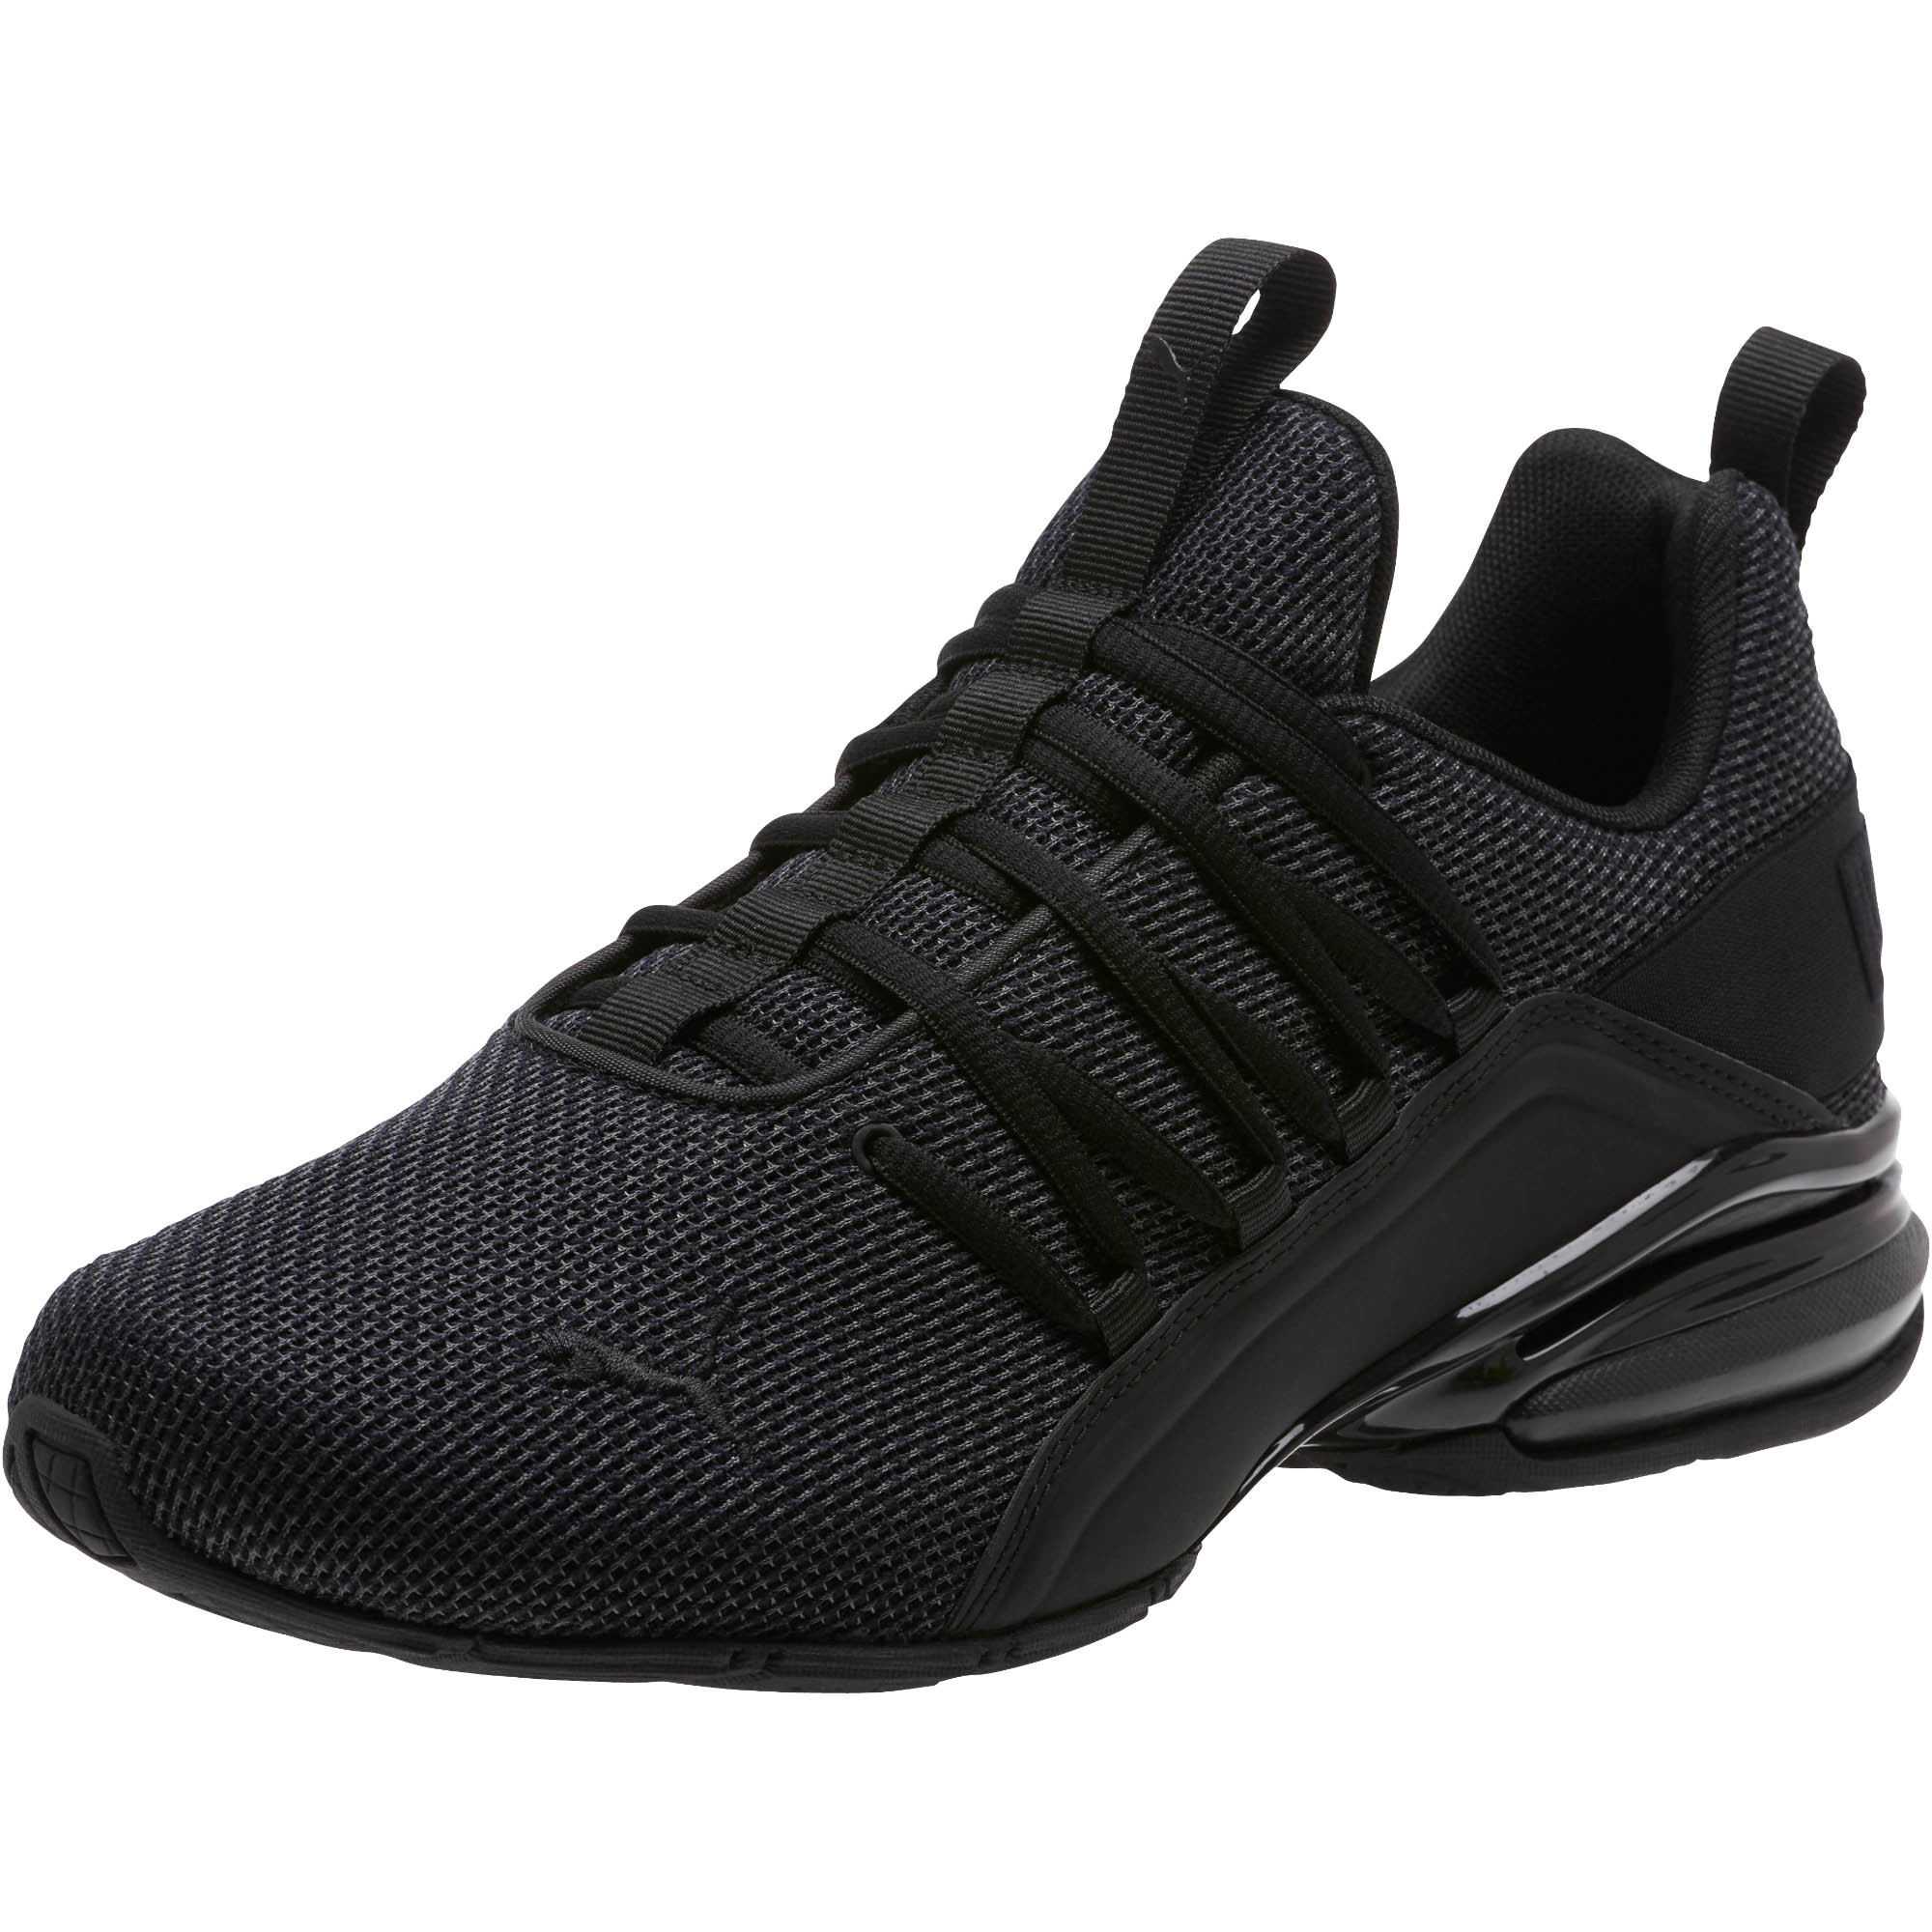 PUMA-Men-039-s-Axelion-Mesh-Training-Shoes thumbnail 9